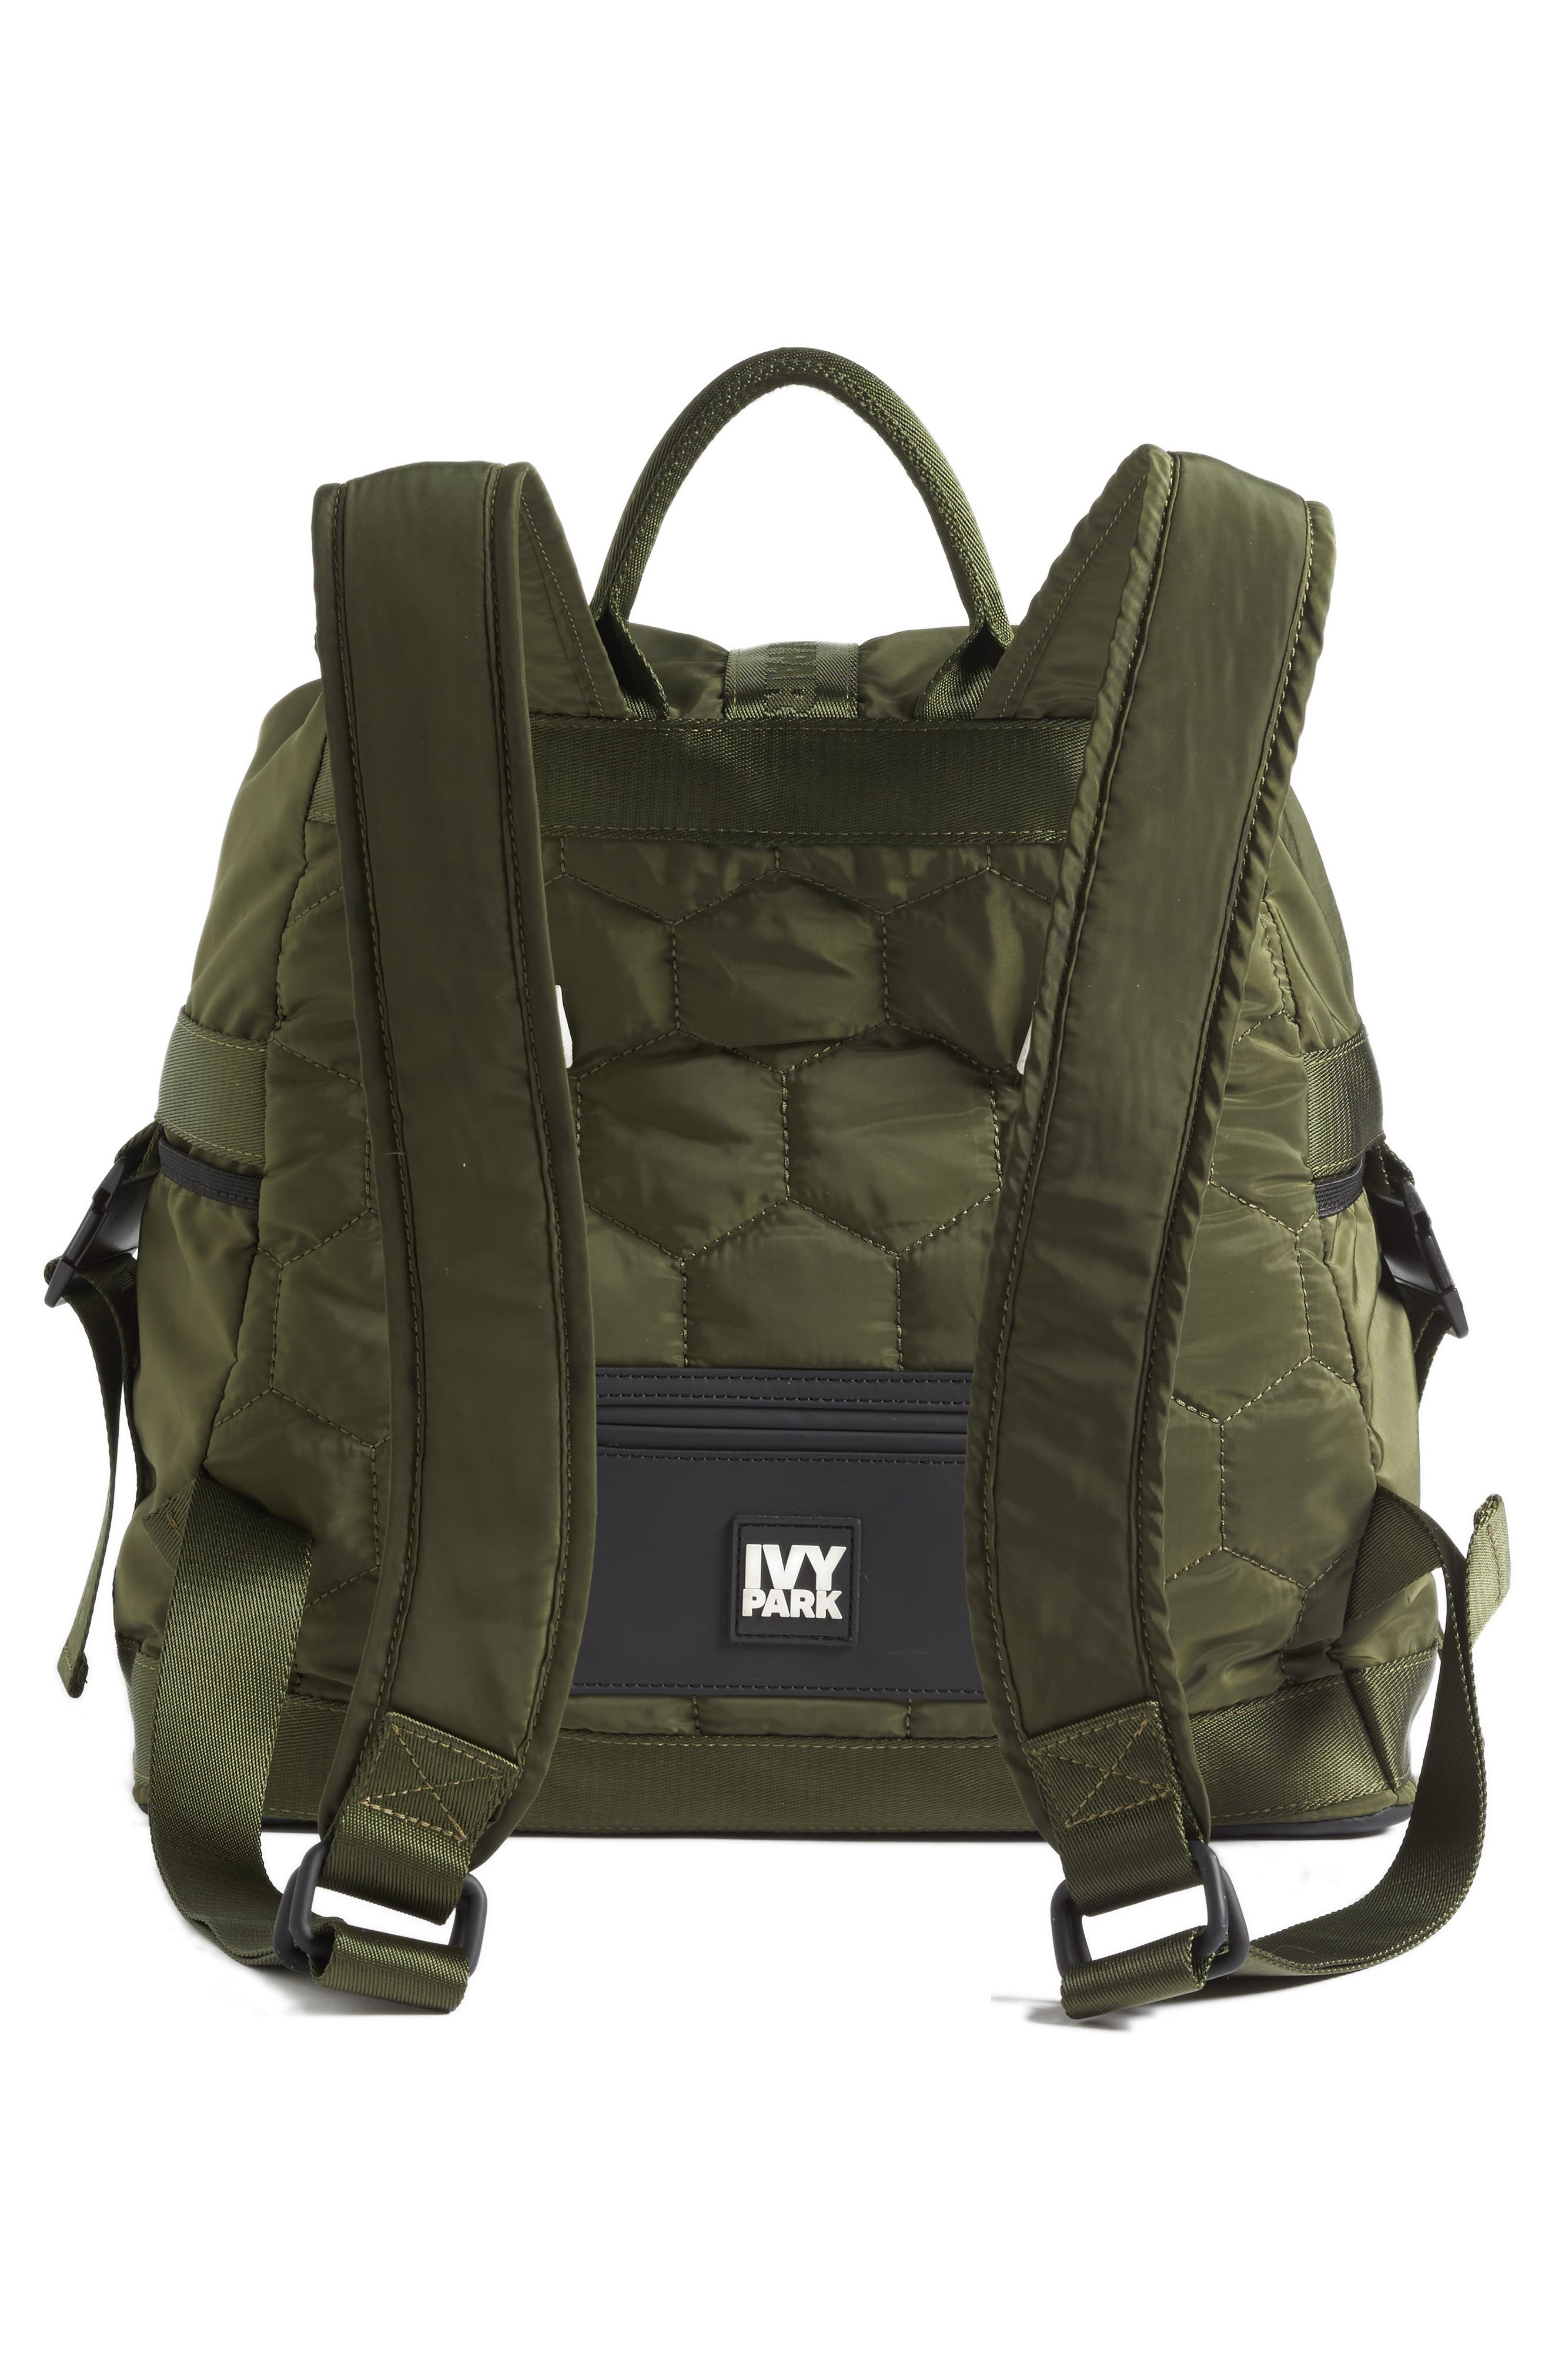 Parachute Strap Backpack,                             Alternate thumbnail 3, color,                             310